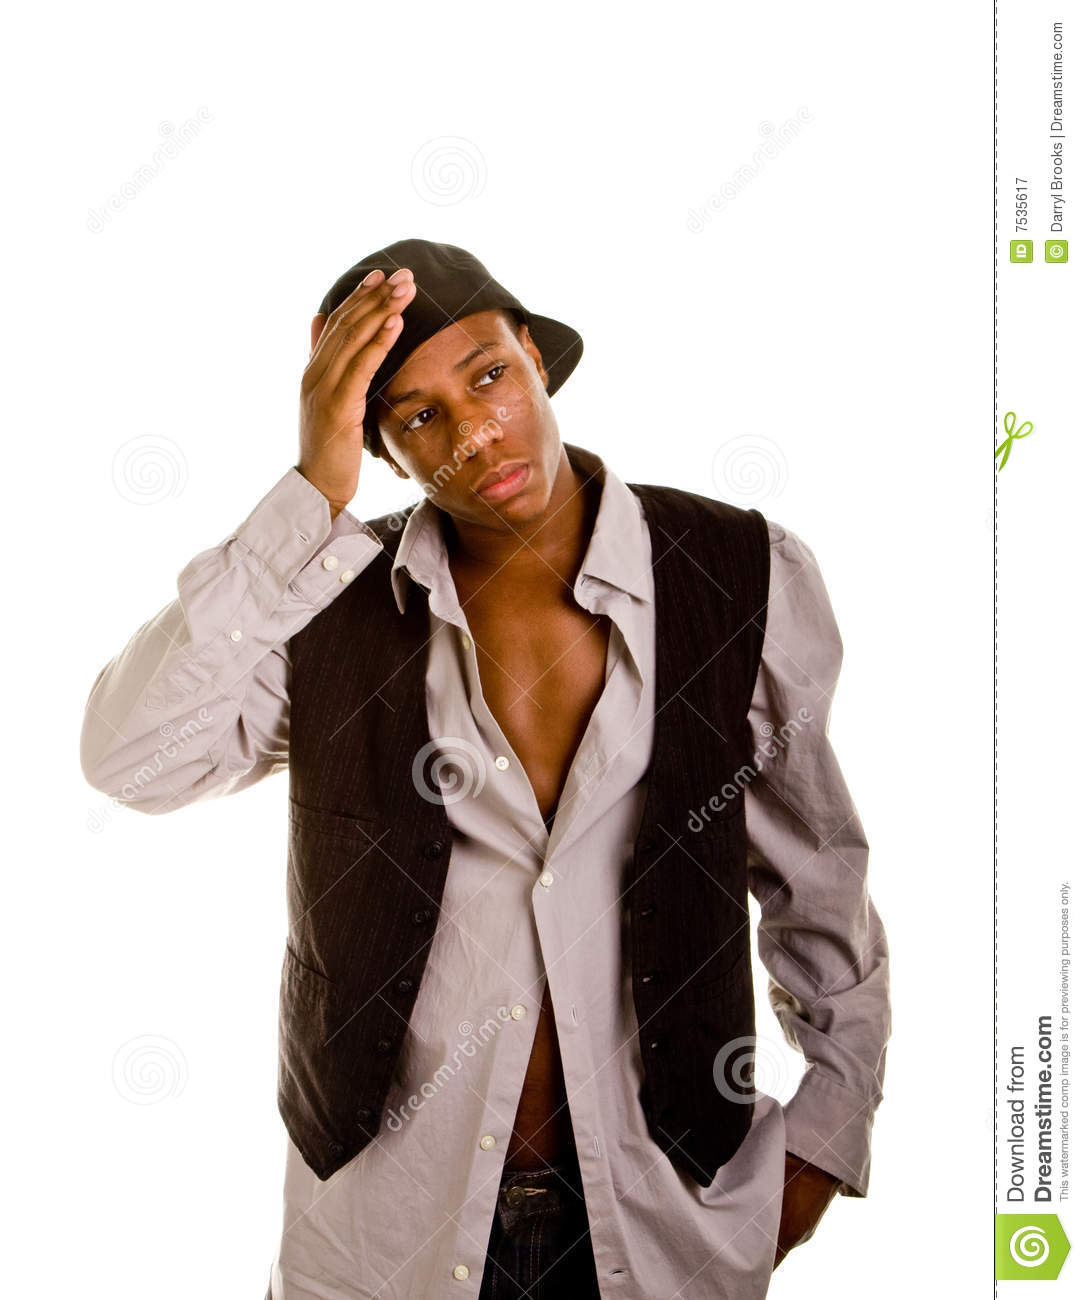 86b6c35c353 Young Black Man Hat Backwards Hand On Head Stock Image - Image of ...